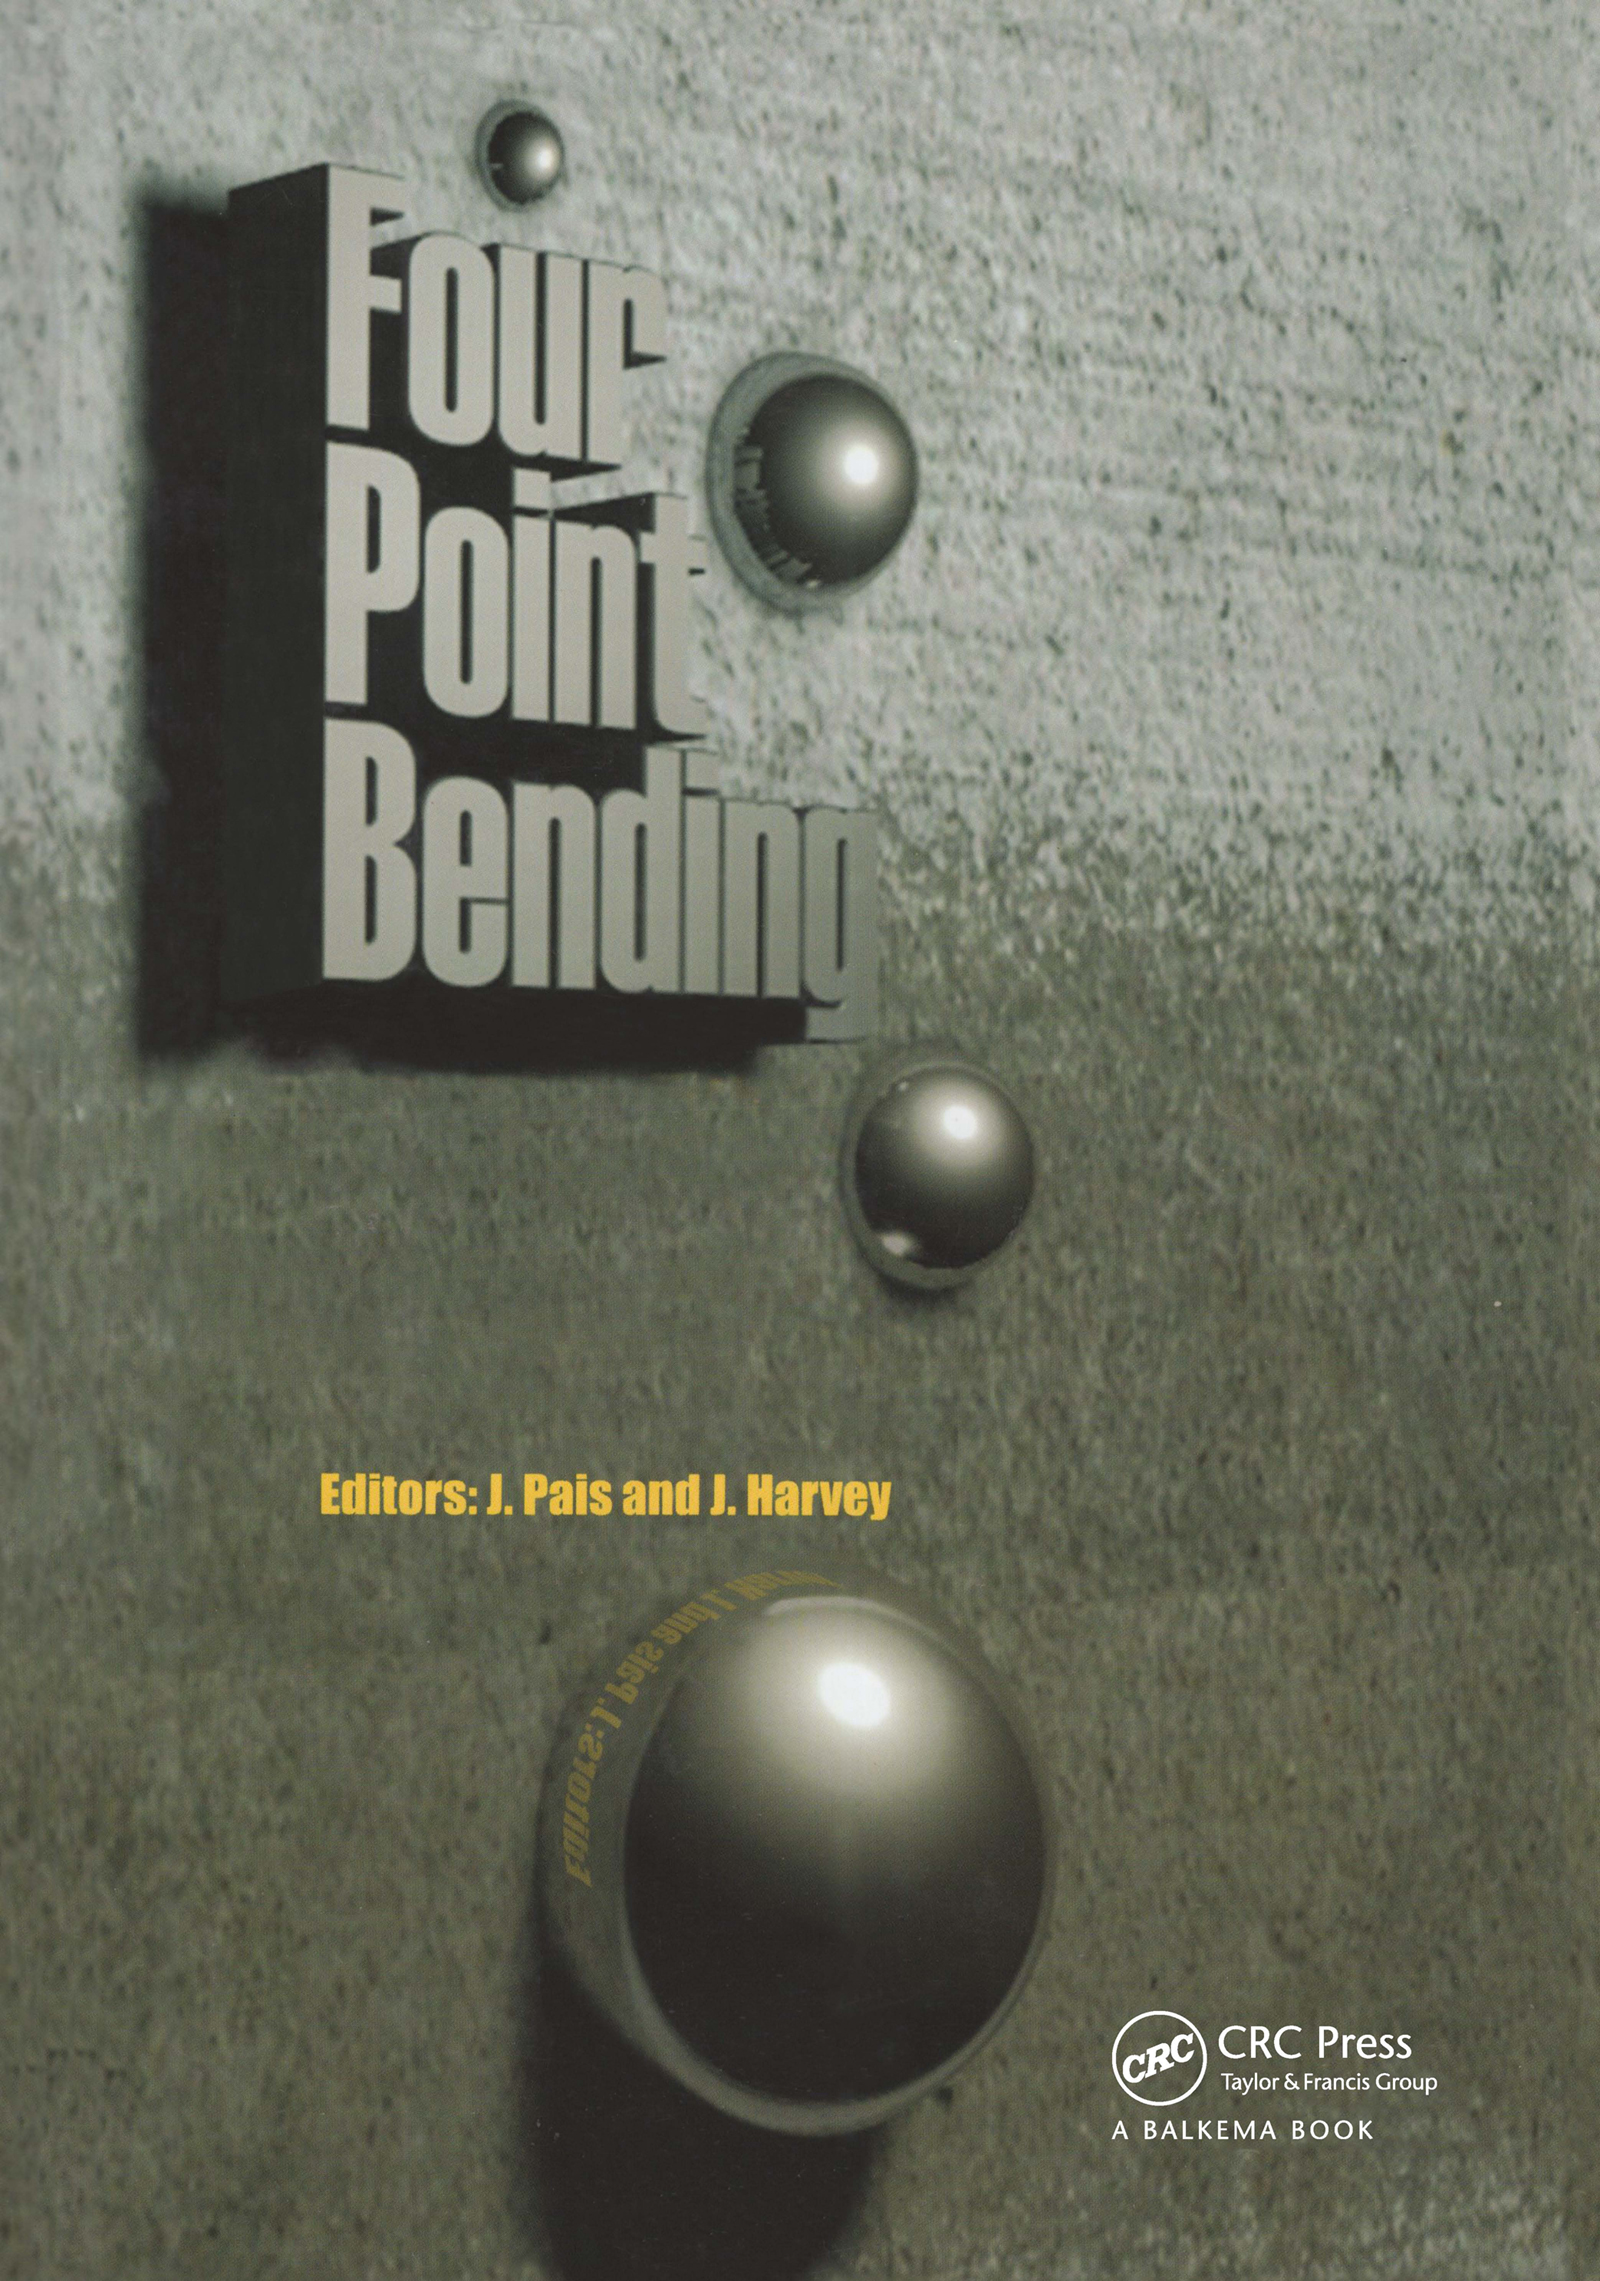 Four Point Bending (Pack - Book and CD) book cover